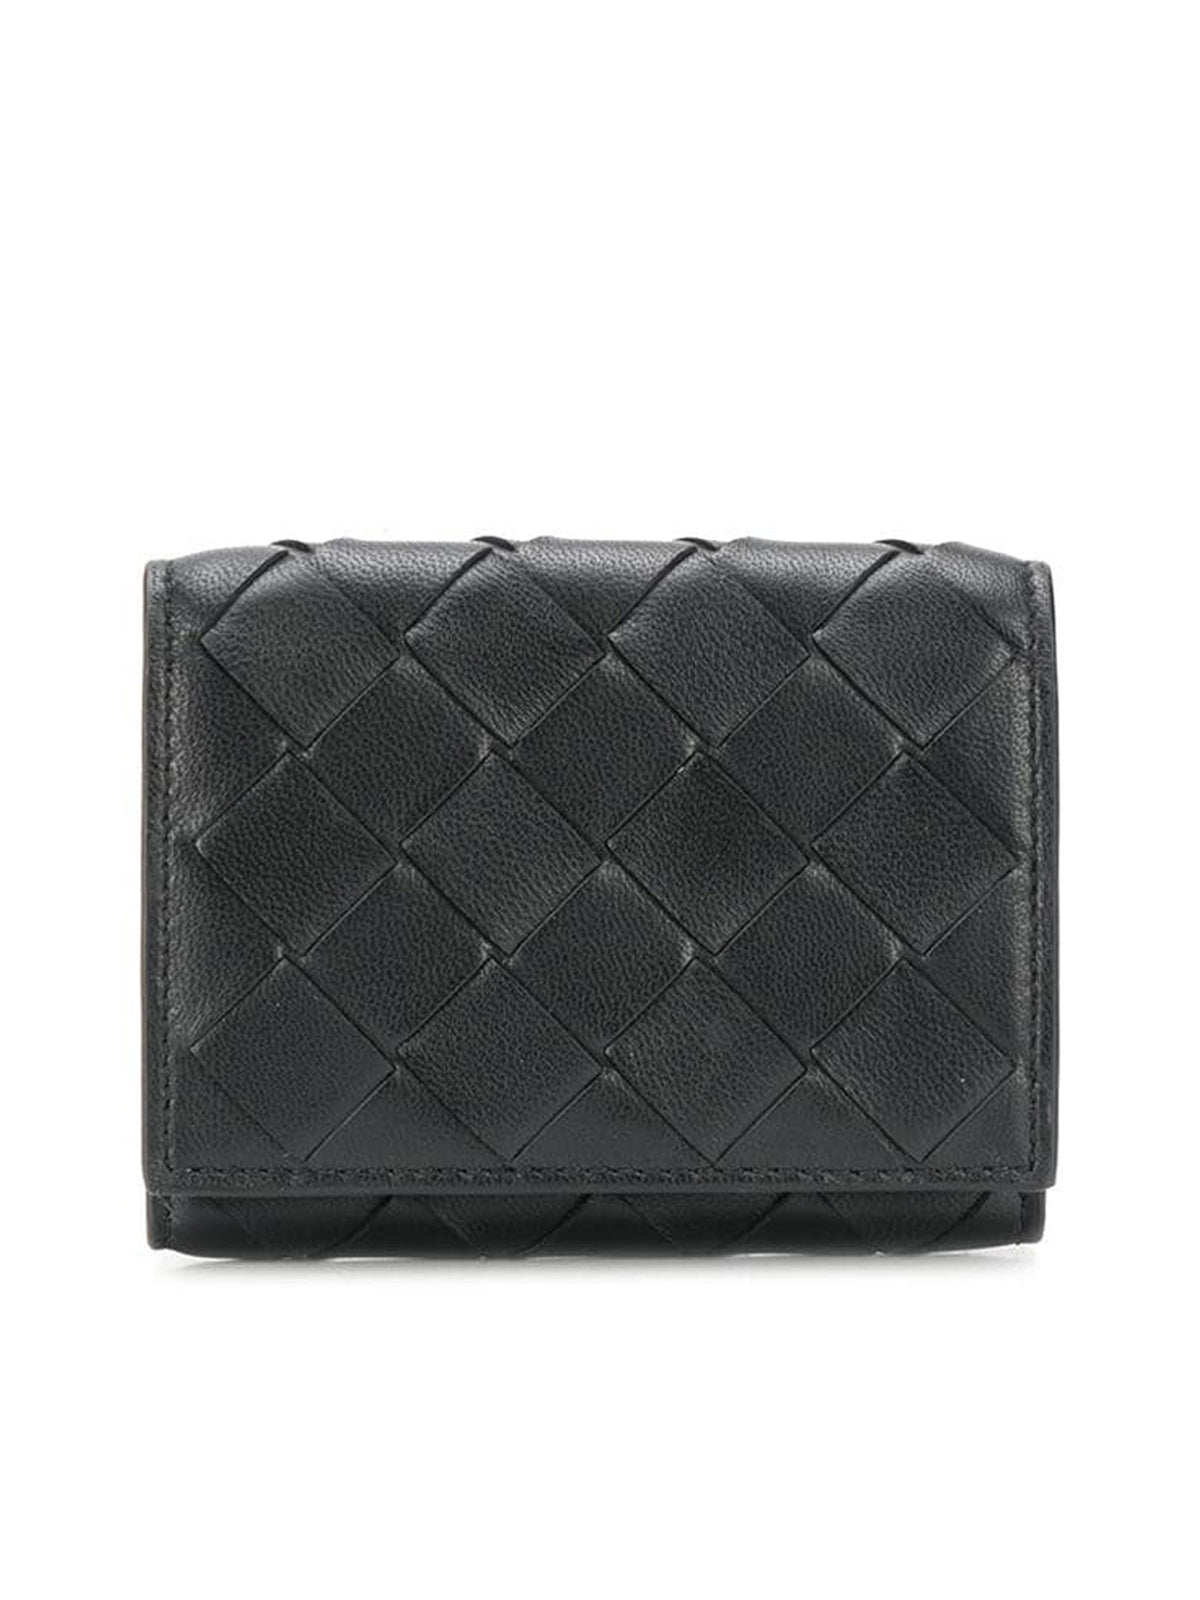 Wallet with woven design